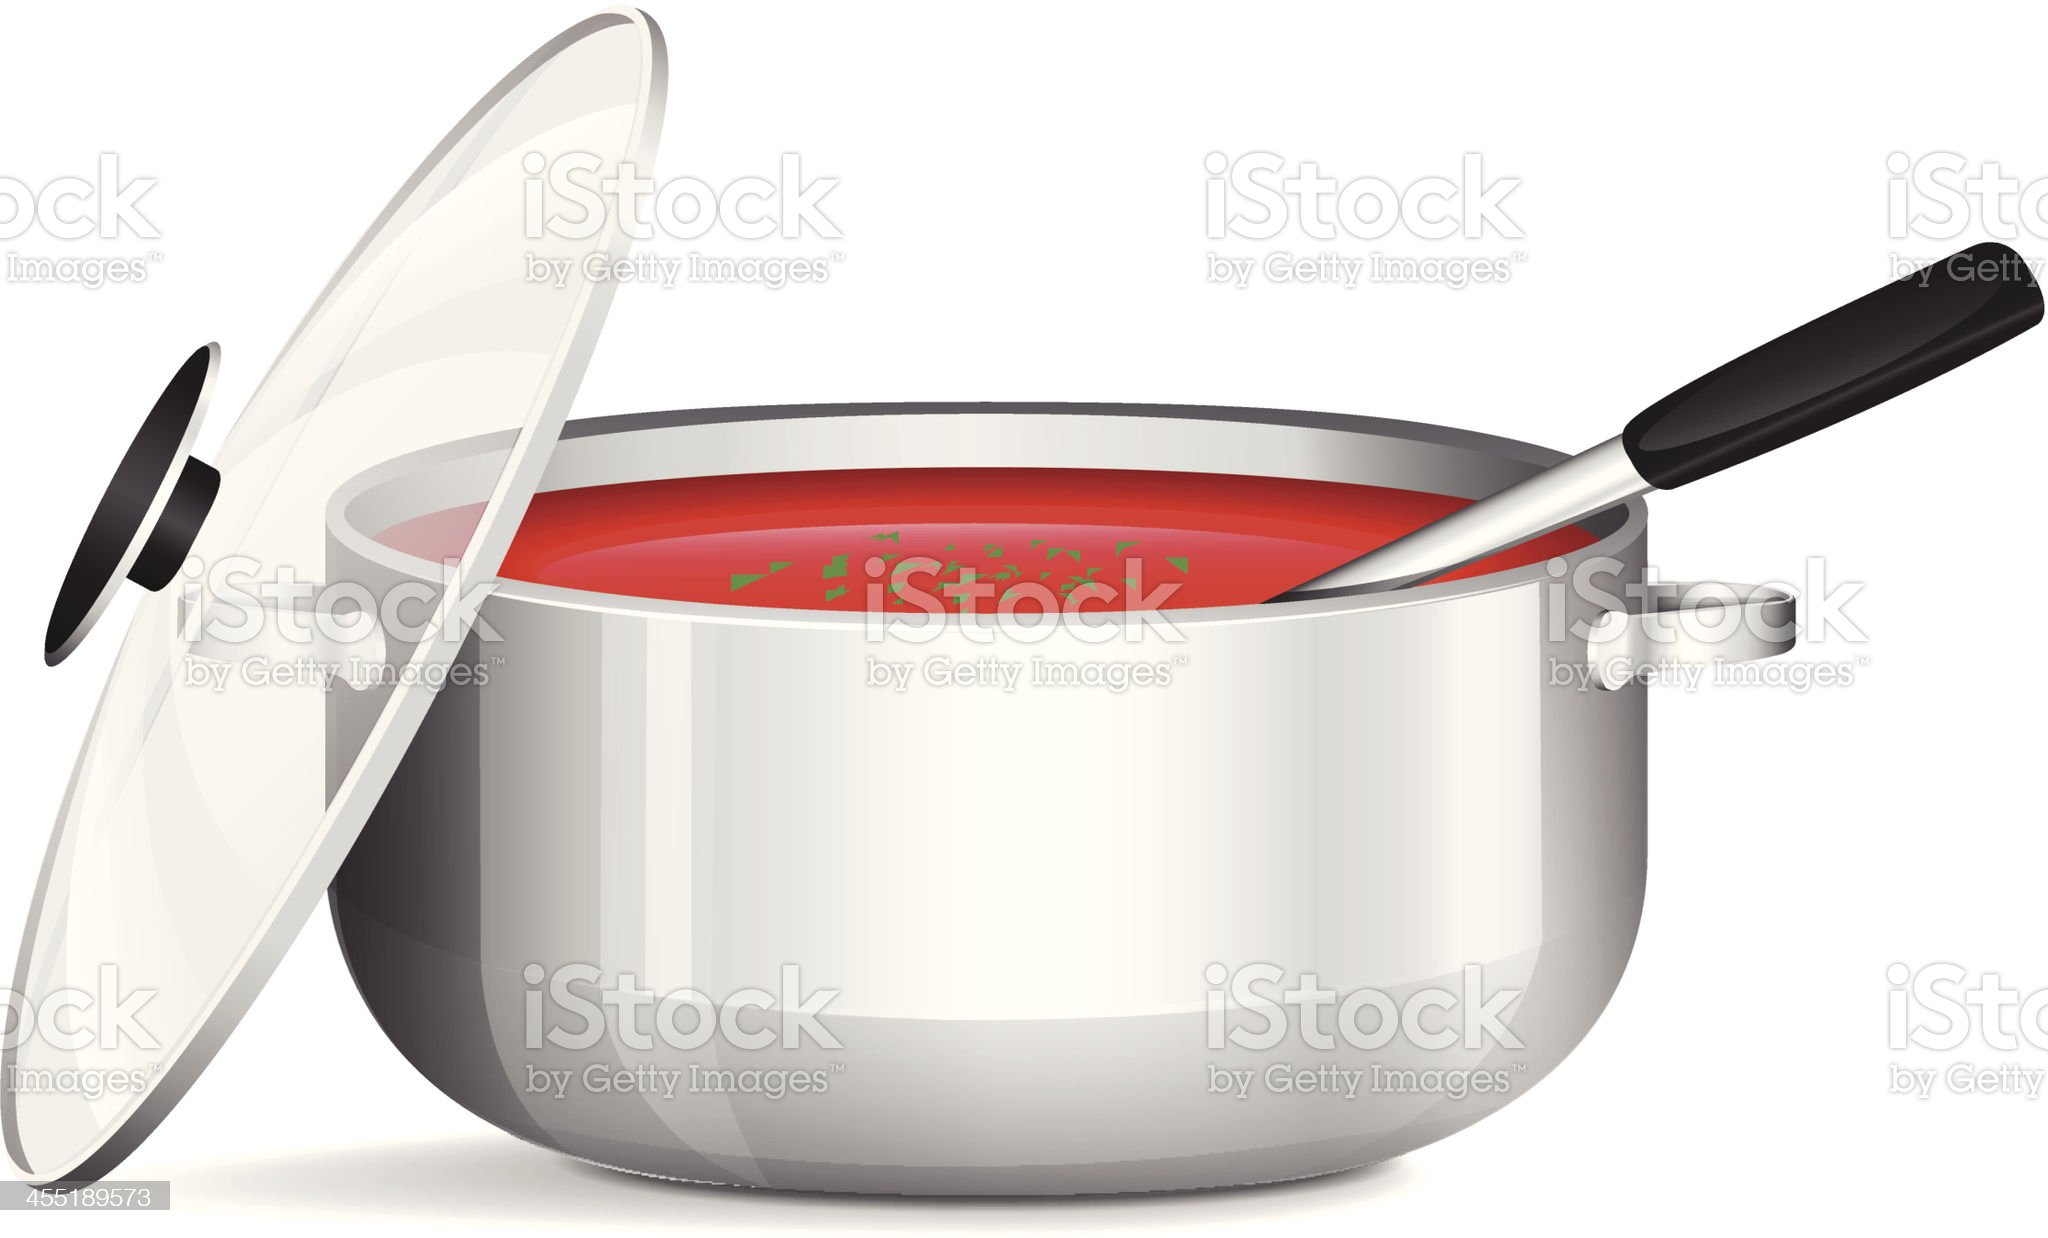 Pot Of Soup royalty-free stock vector art